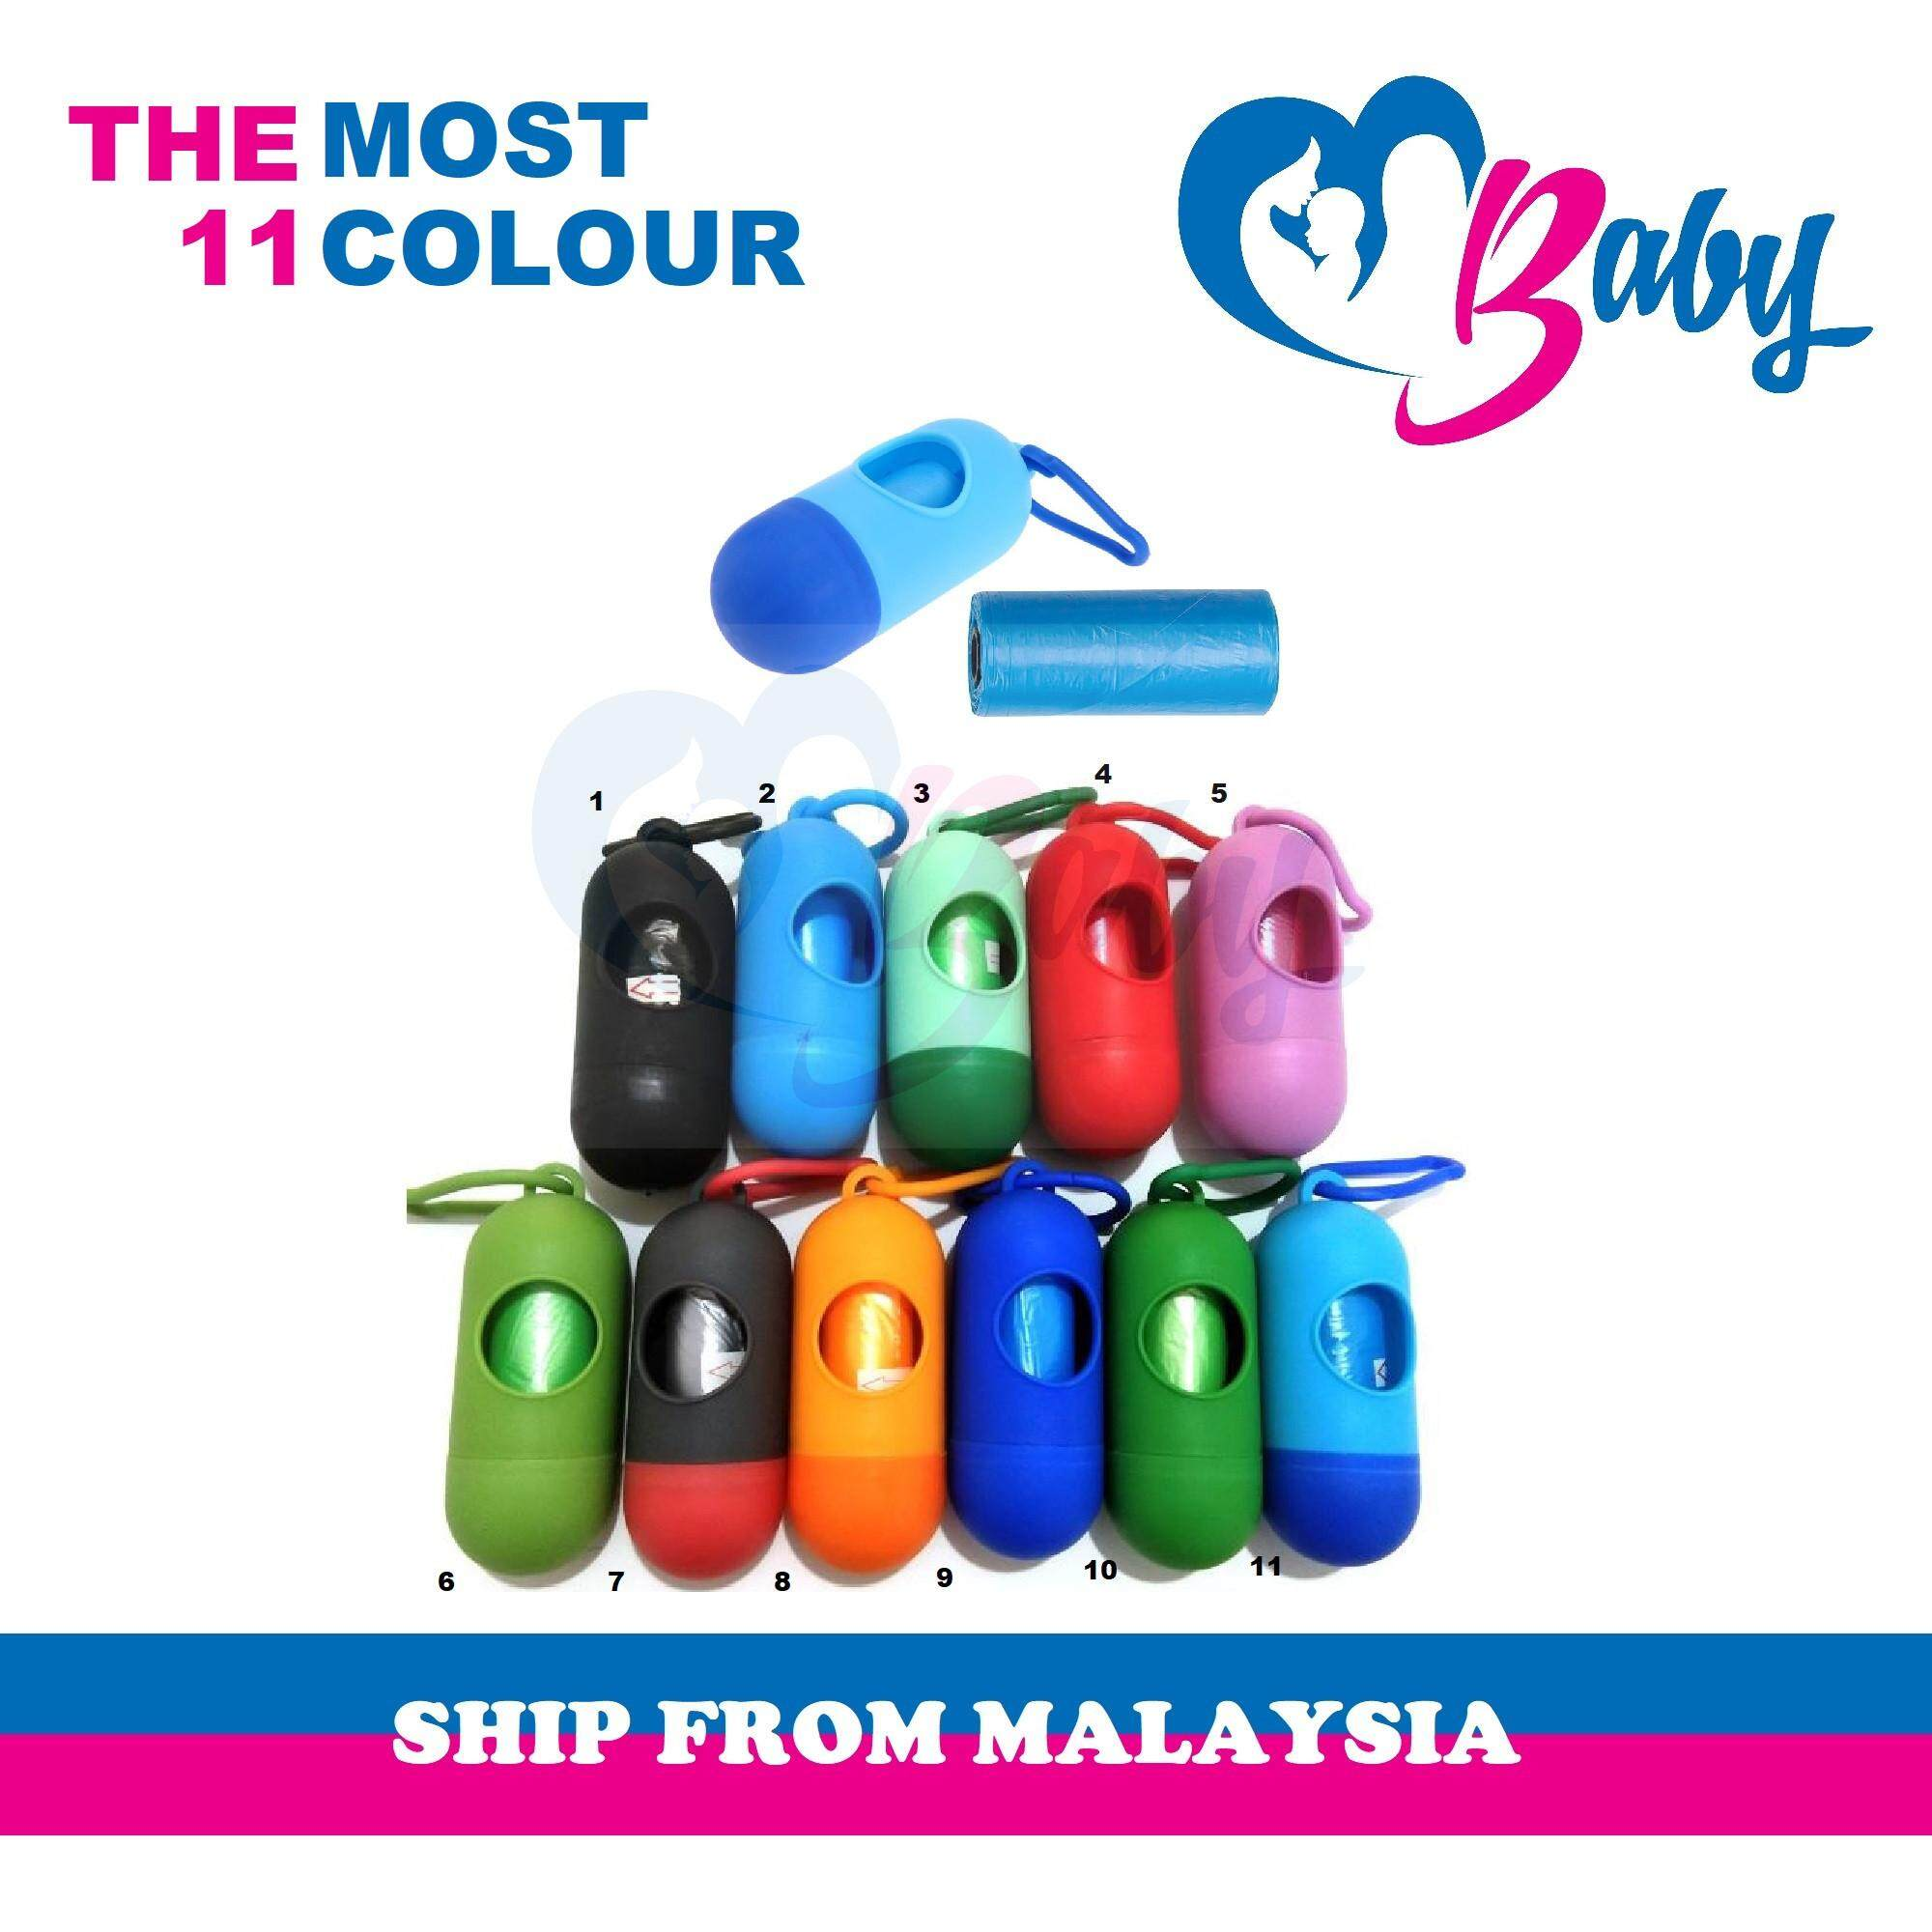 【ready Stock / Brand Origin From Borneo】[combo = 1 Case + 2 Roll] Mbaby Portable Diaper Disposal Plastic Dispenser Garbage Rubbish Bag Refillable Box Case Organizer By Mbaby Malaysia.